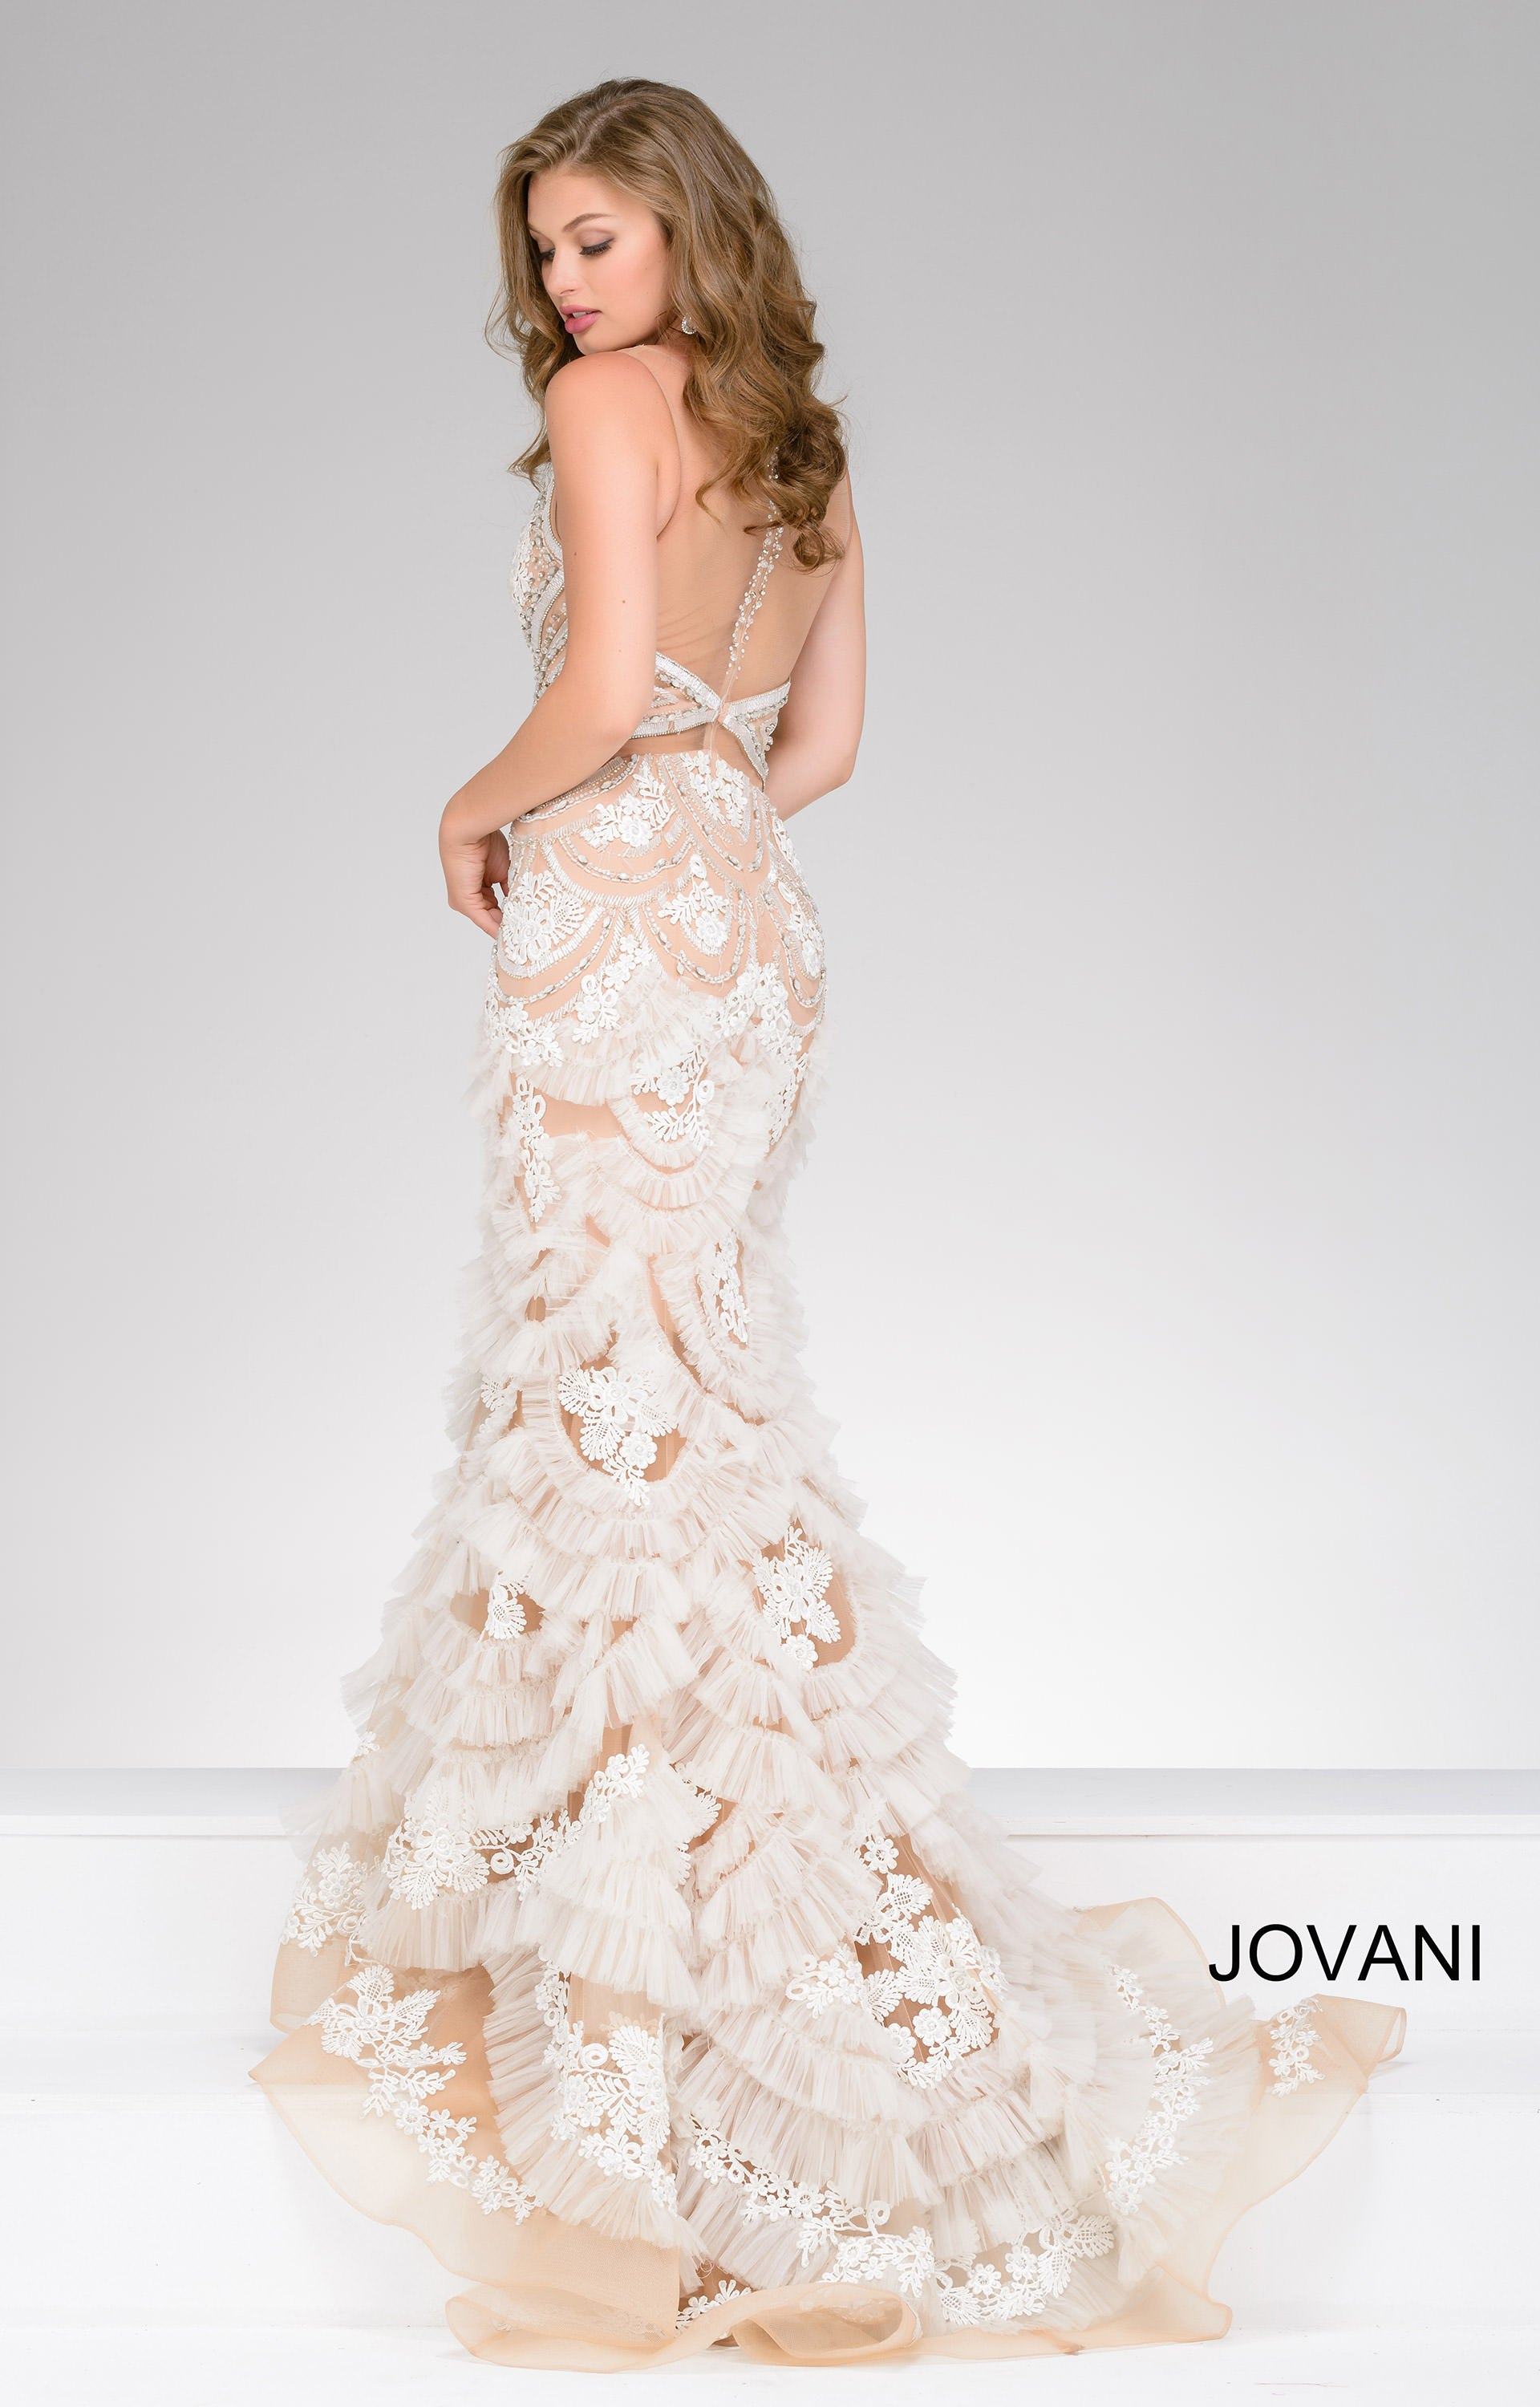 Jovani 41592 Dramatic Fit And Flare Dress With Illusion